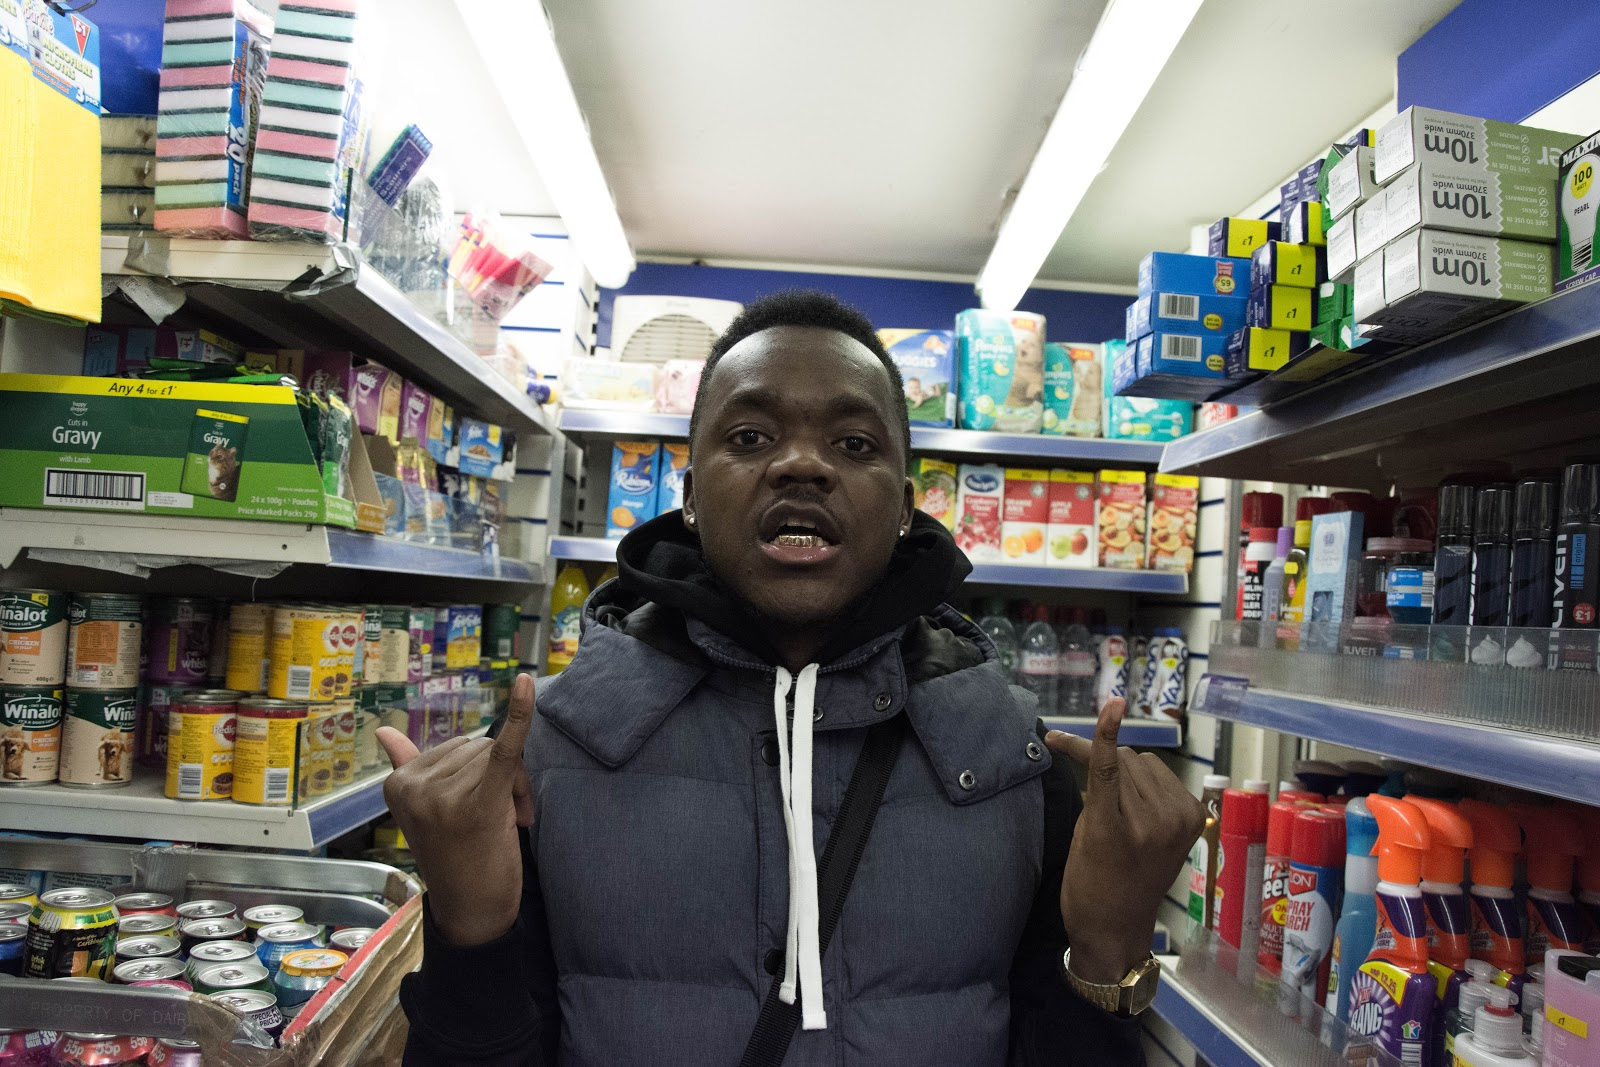 Pictured is J-Zino, wearing a black/grey jacket and standing in a store.